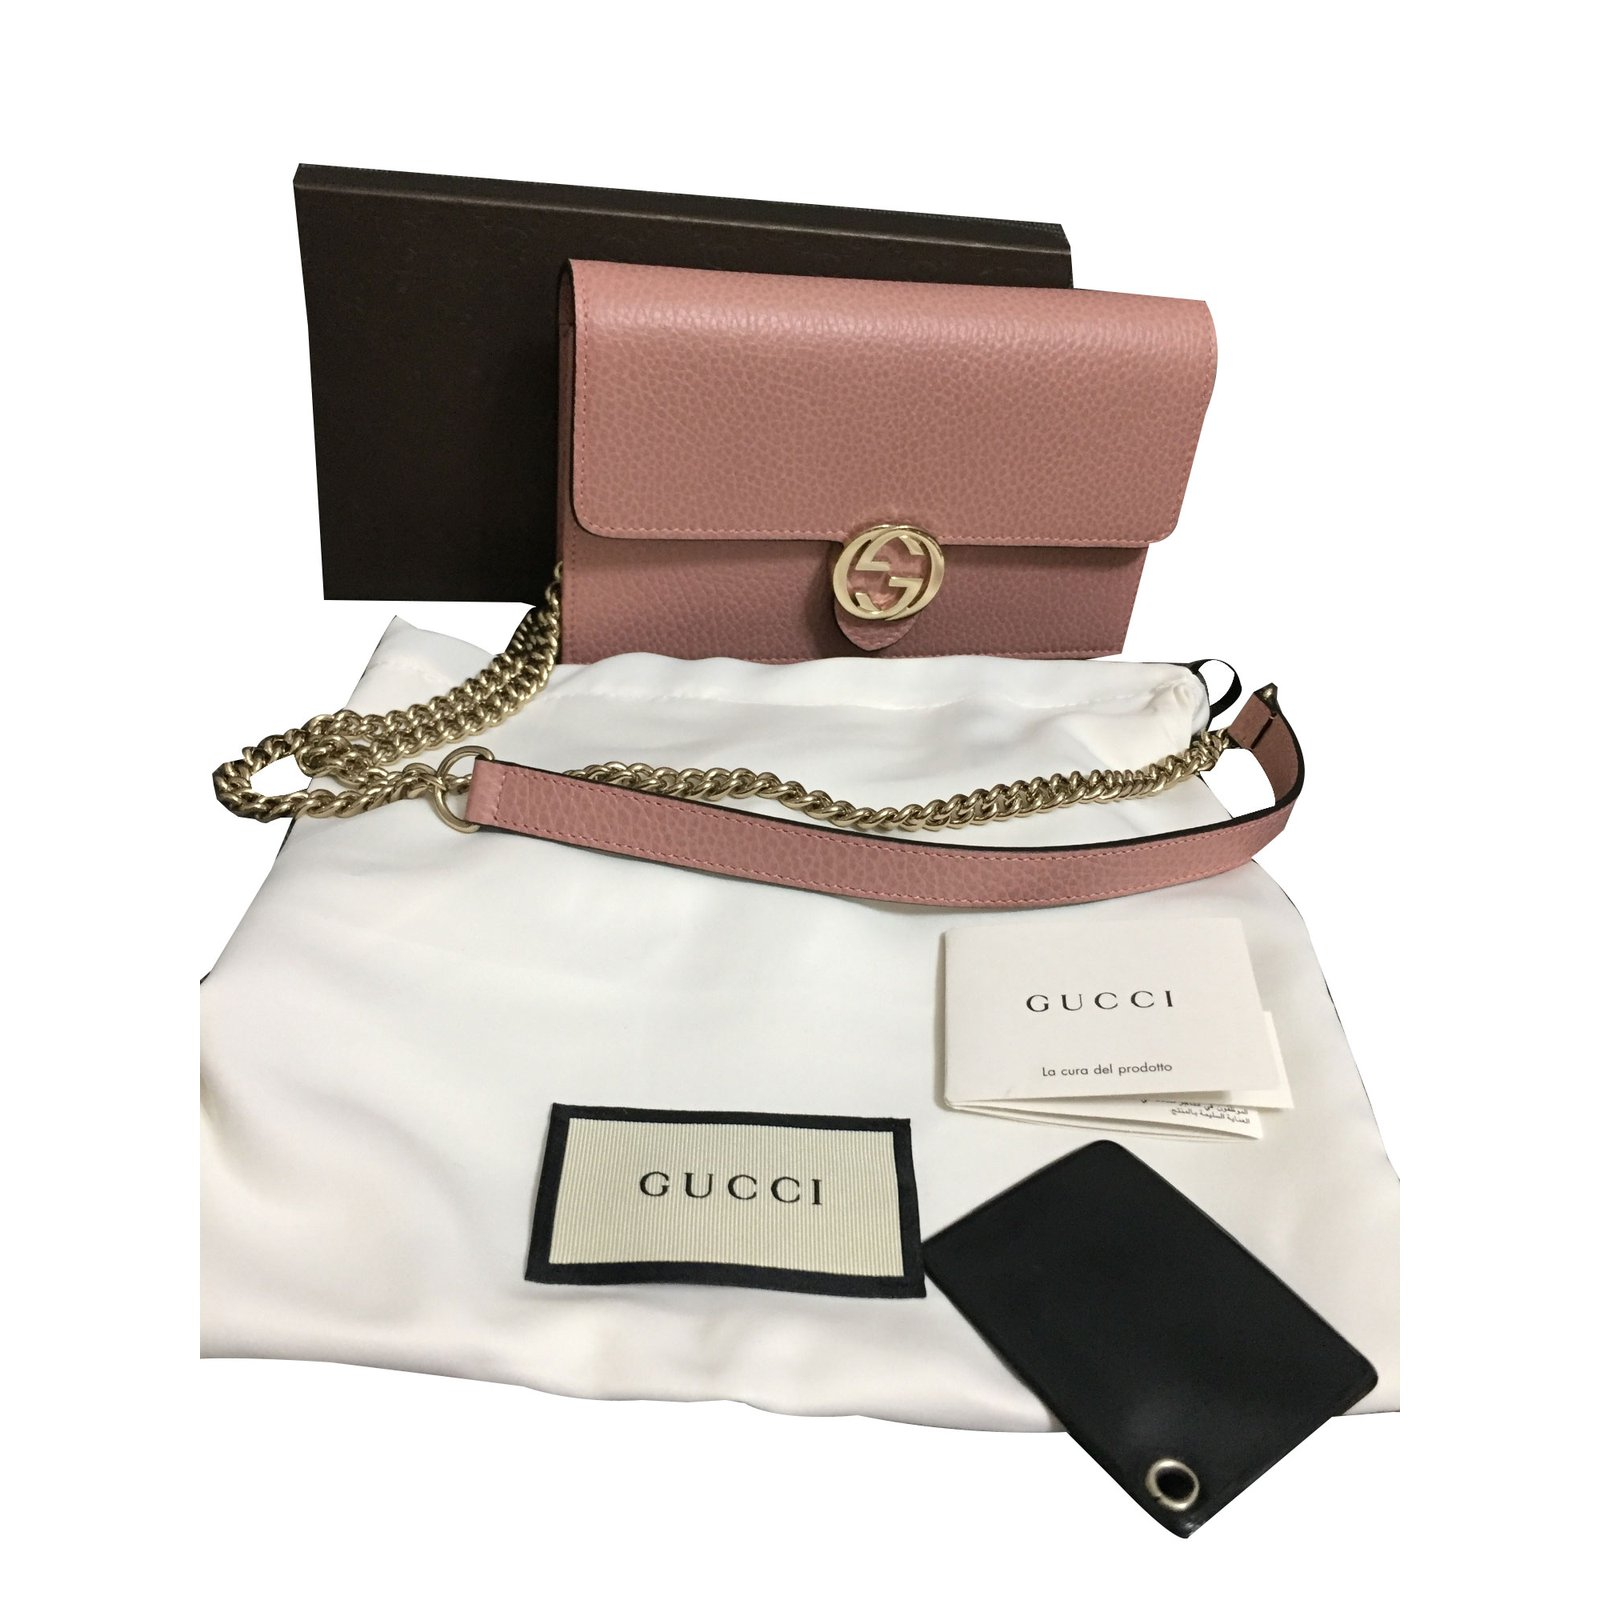 331058b6a711 Gucci Wallet on chain Purses